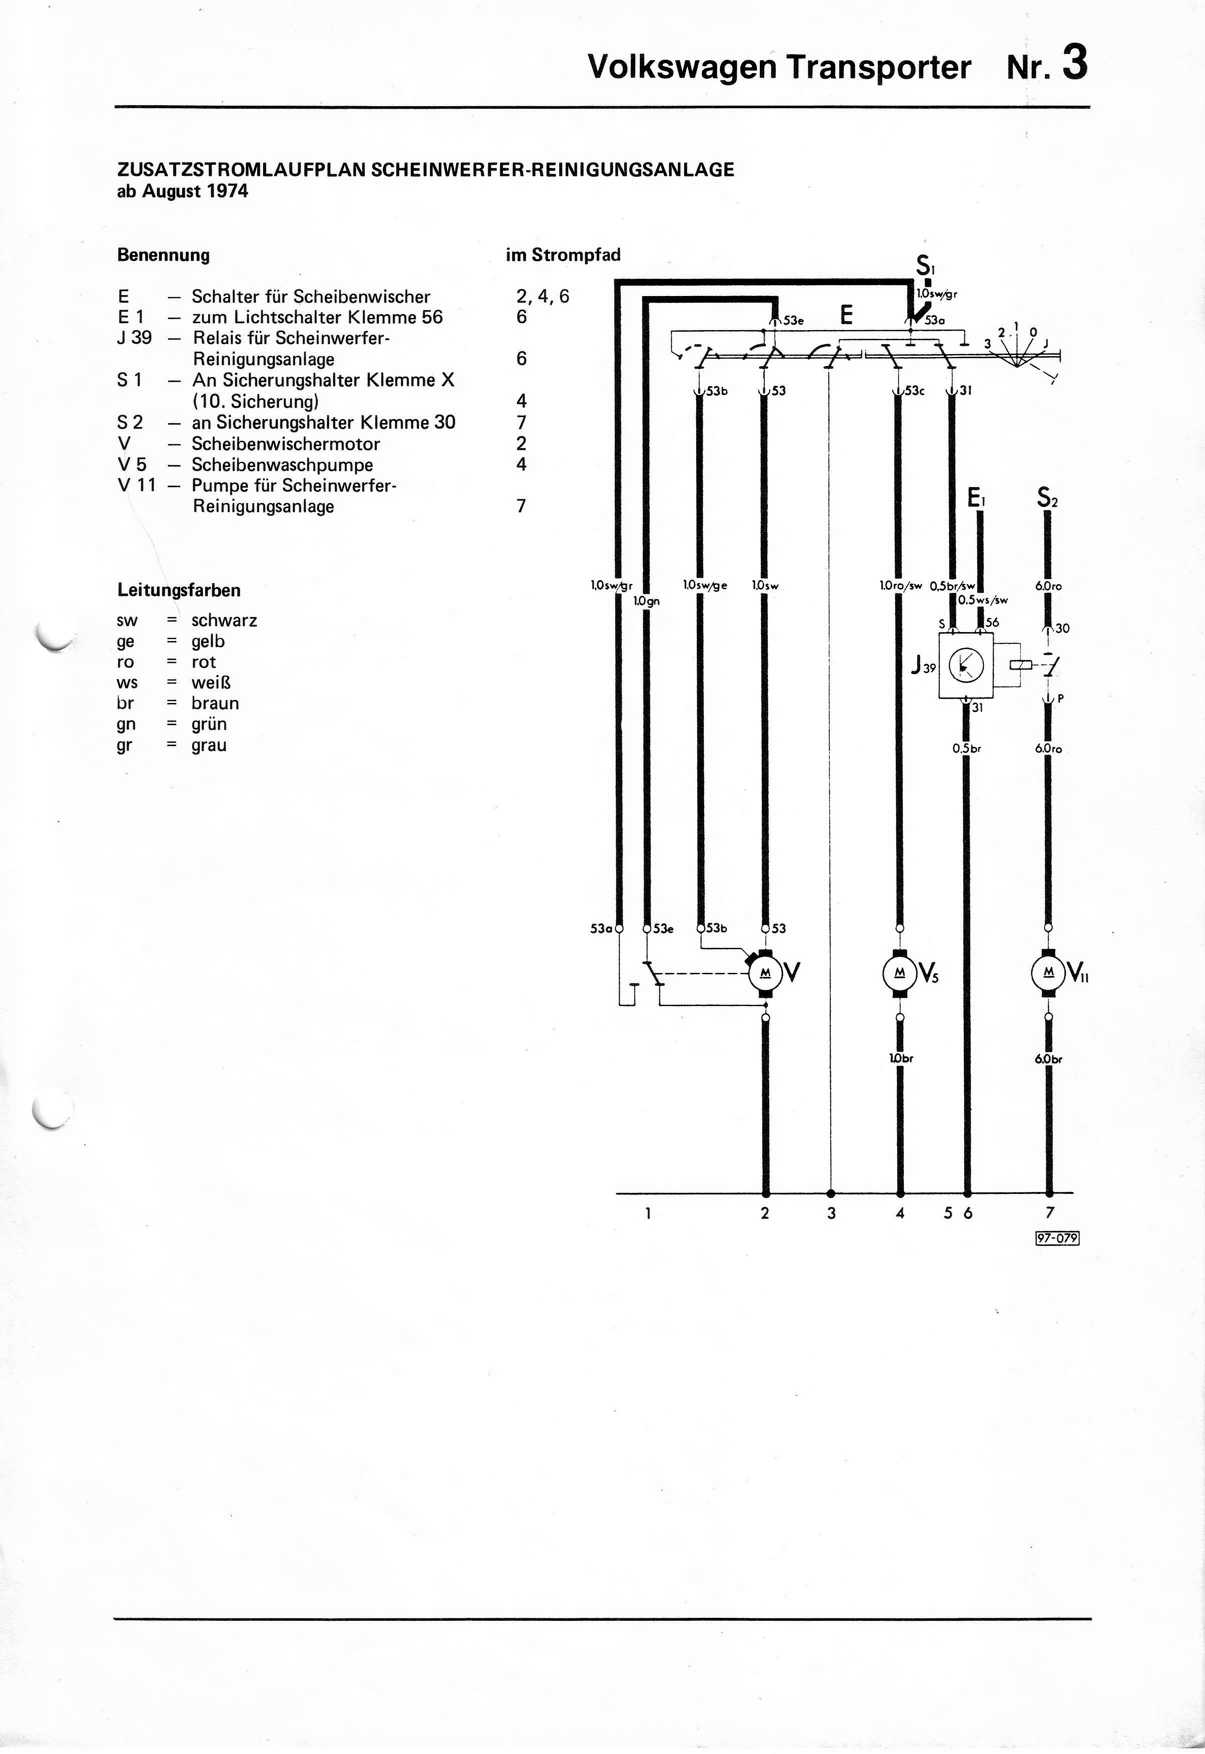 1974 08 vw t2 headlamp cleaner wiring diagram vw tiguan towbar wiring diagram wiring diagram tiguan towbar wiring diagram at gsmx.co